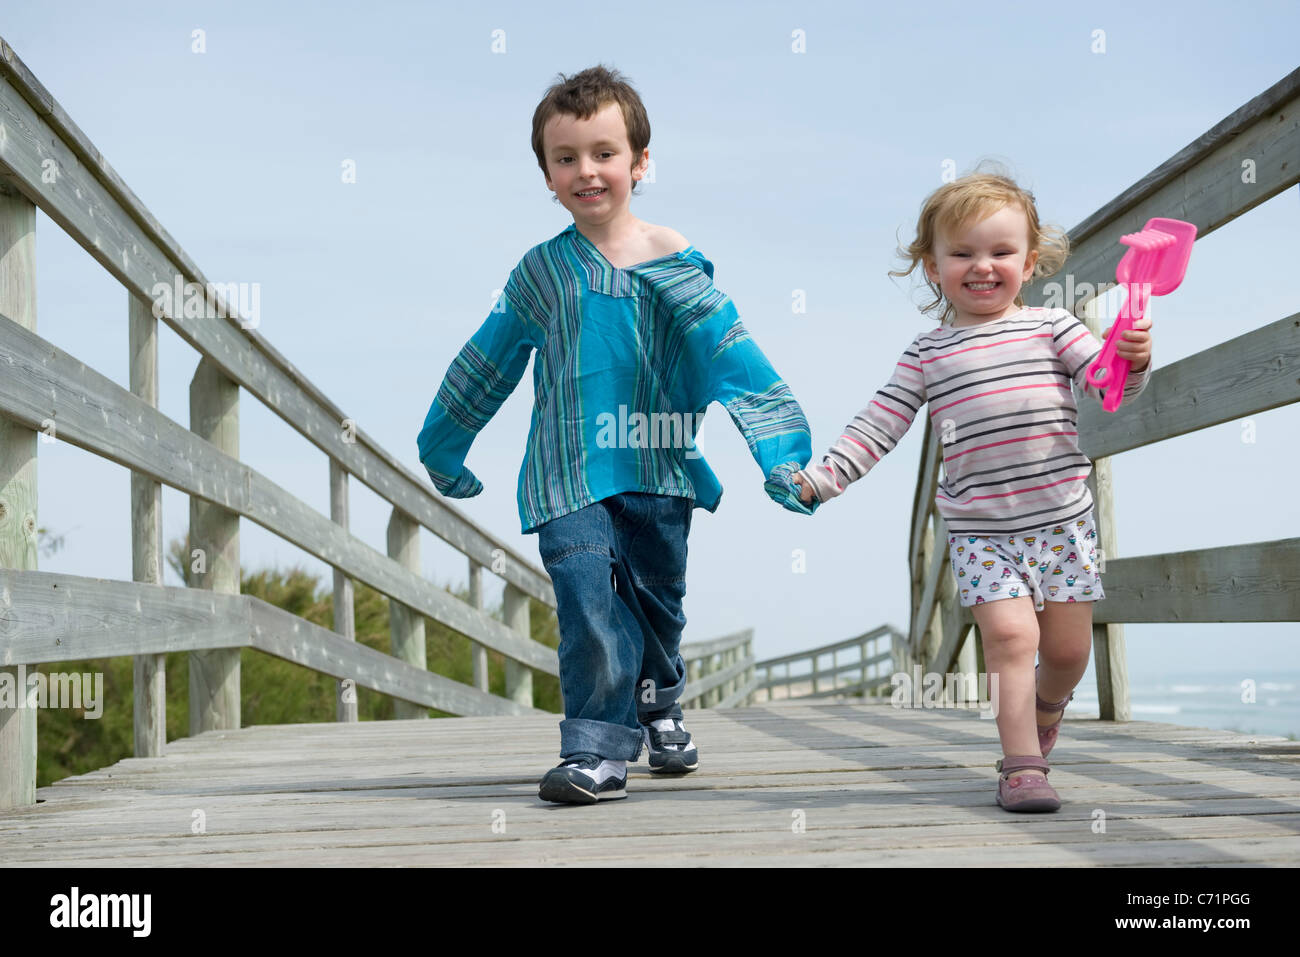 Young siblings walking hand in hand on boardwalk Stock Photo